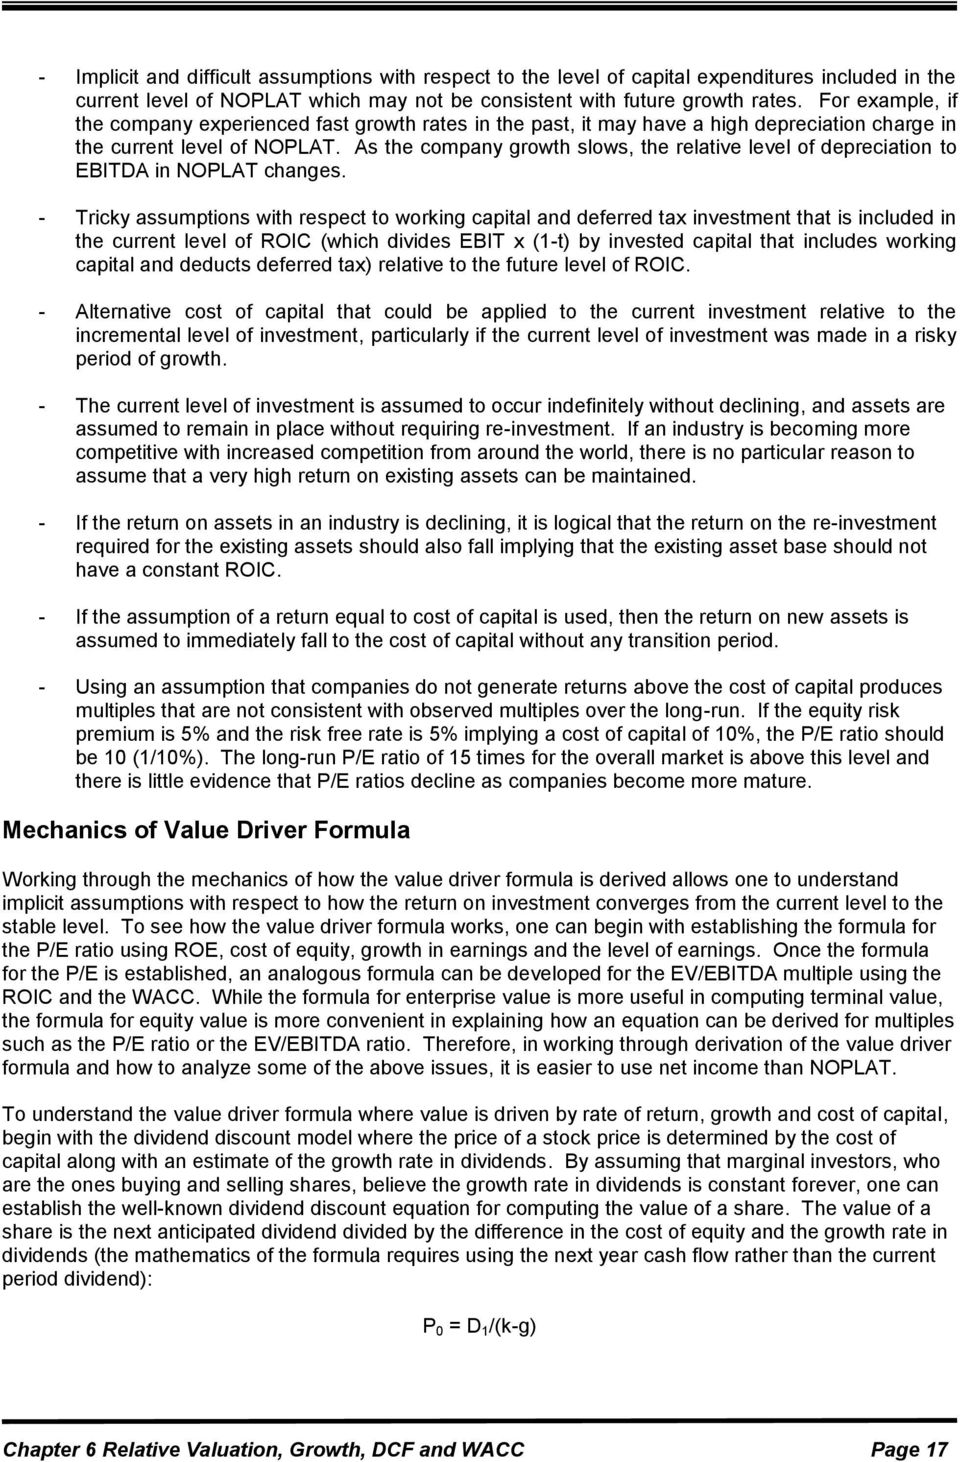 Company Valuation Formula Ebitda